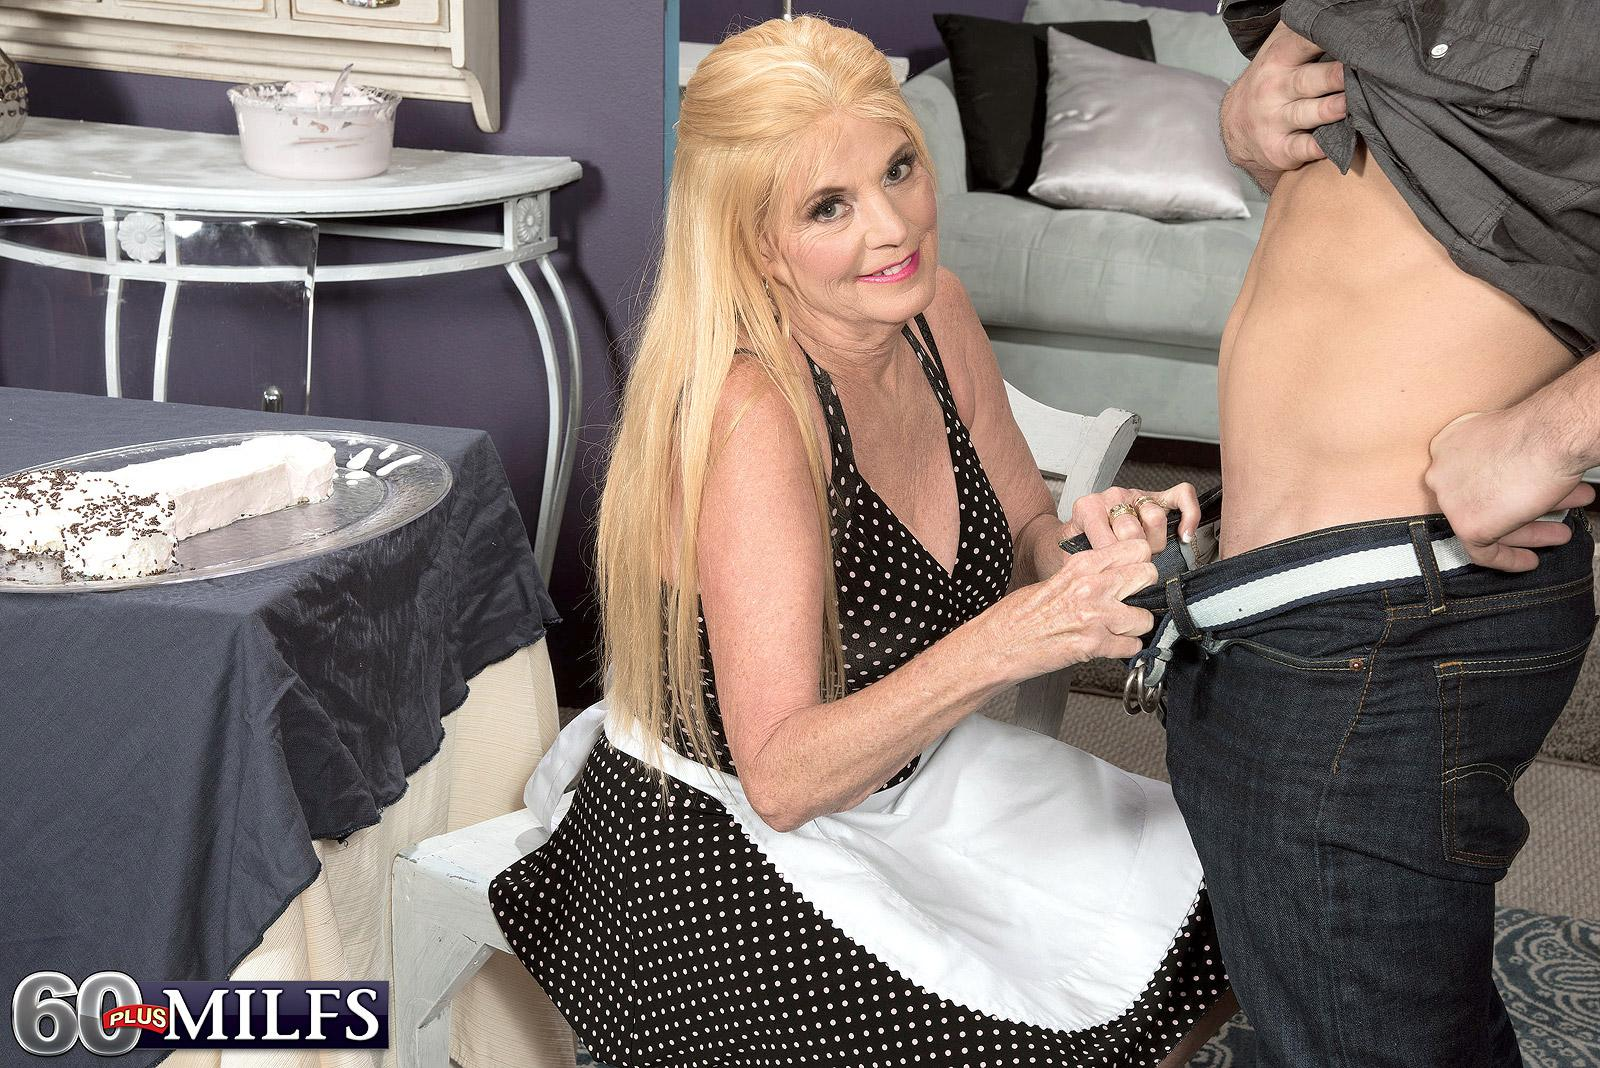 Fully clothed blond over sixty MILF Charlie providing CFNM hand job to giant dick